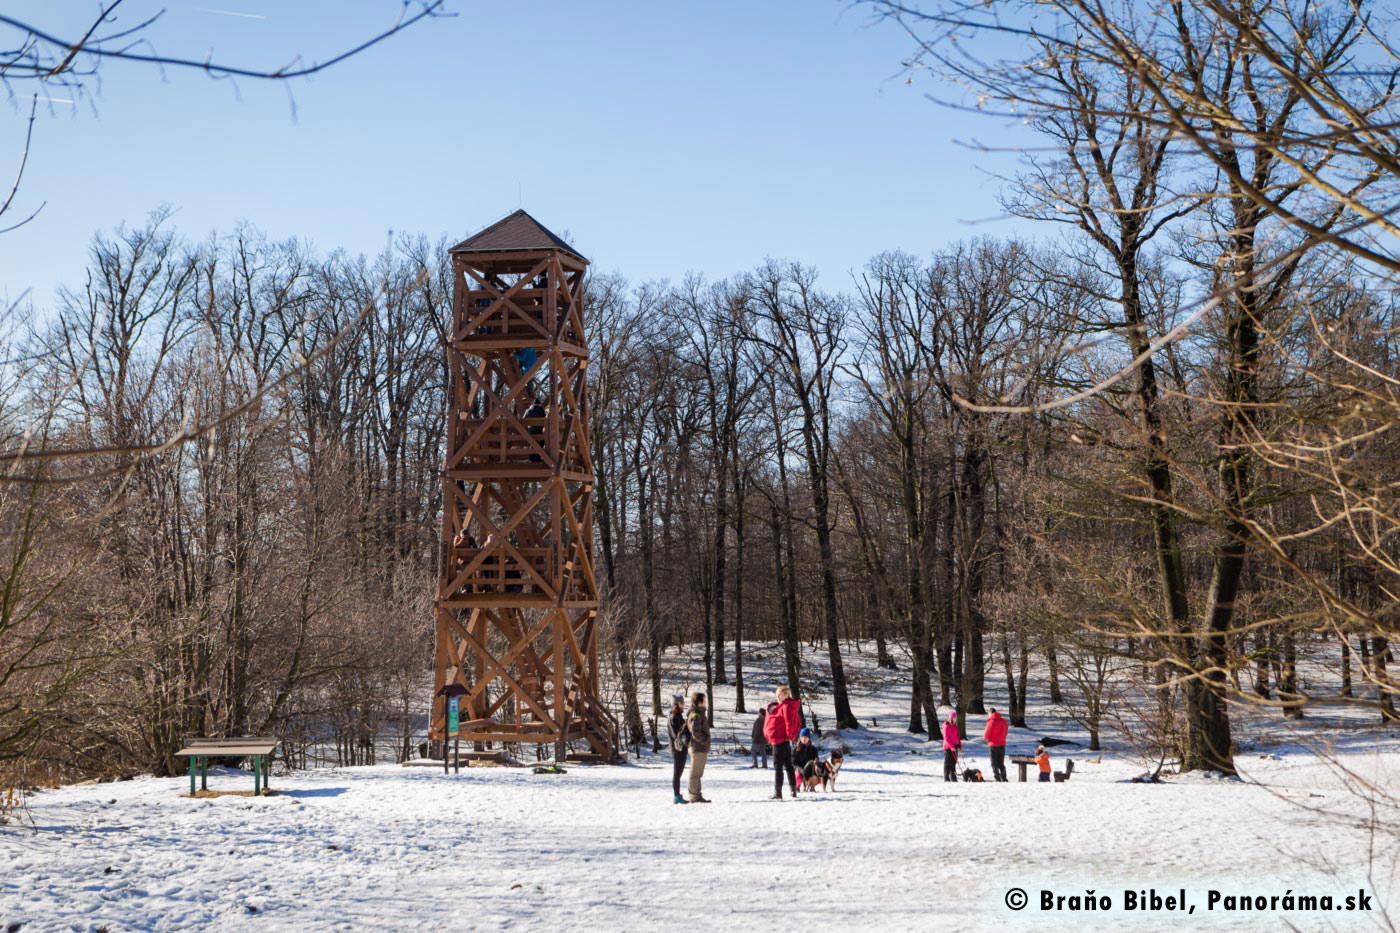 Wooden sightseeing tower in Bratislava forests in Winter